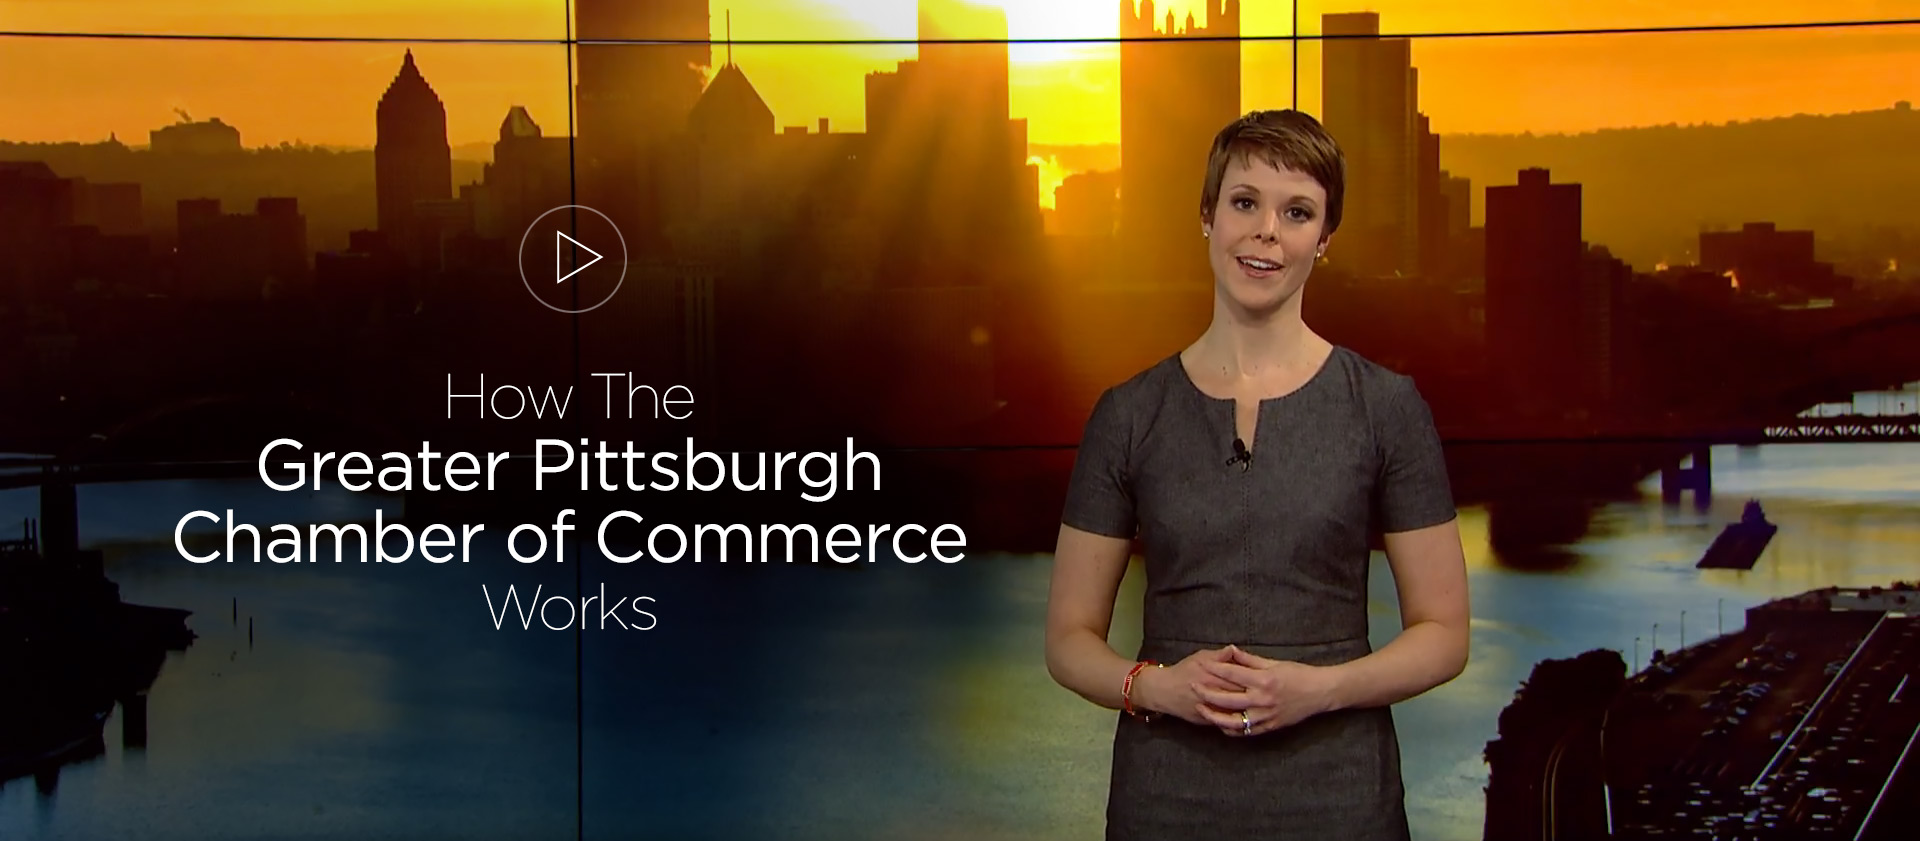 How The Greater Pittsburgh Chamber of Commerce Works